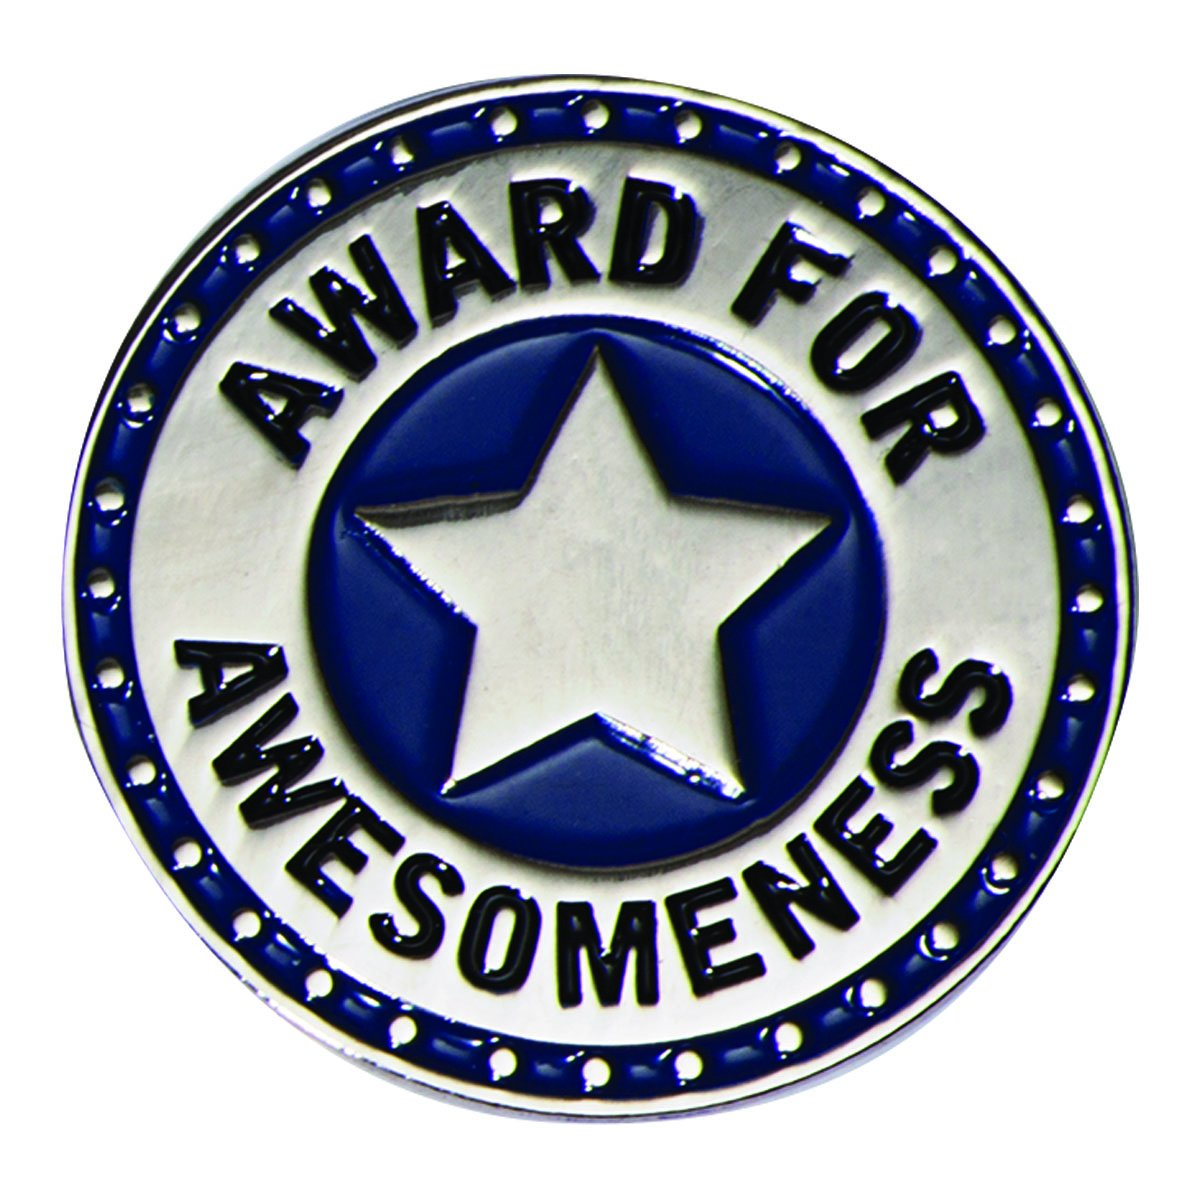 Award for Awesomeness Blue and Silver Appreciation Award Lapel Pins, 6 Pins